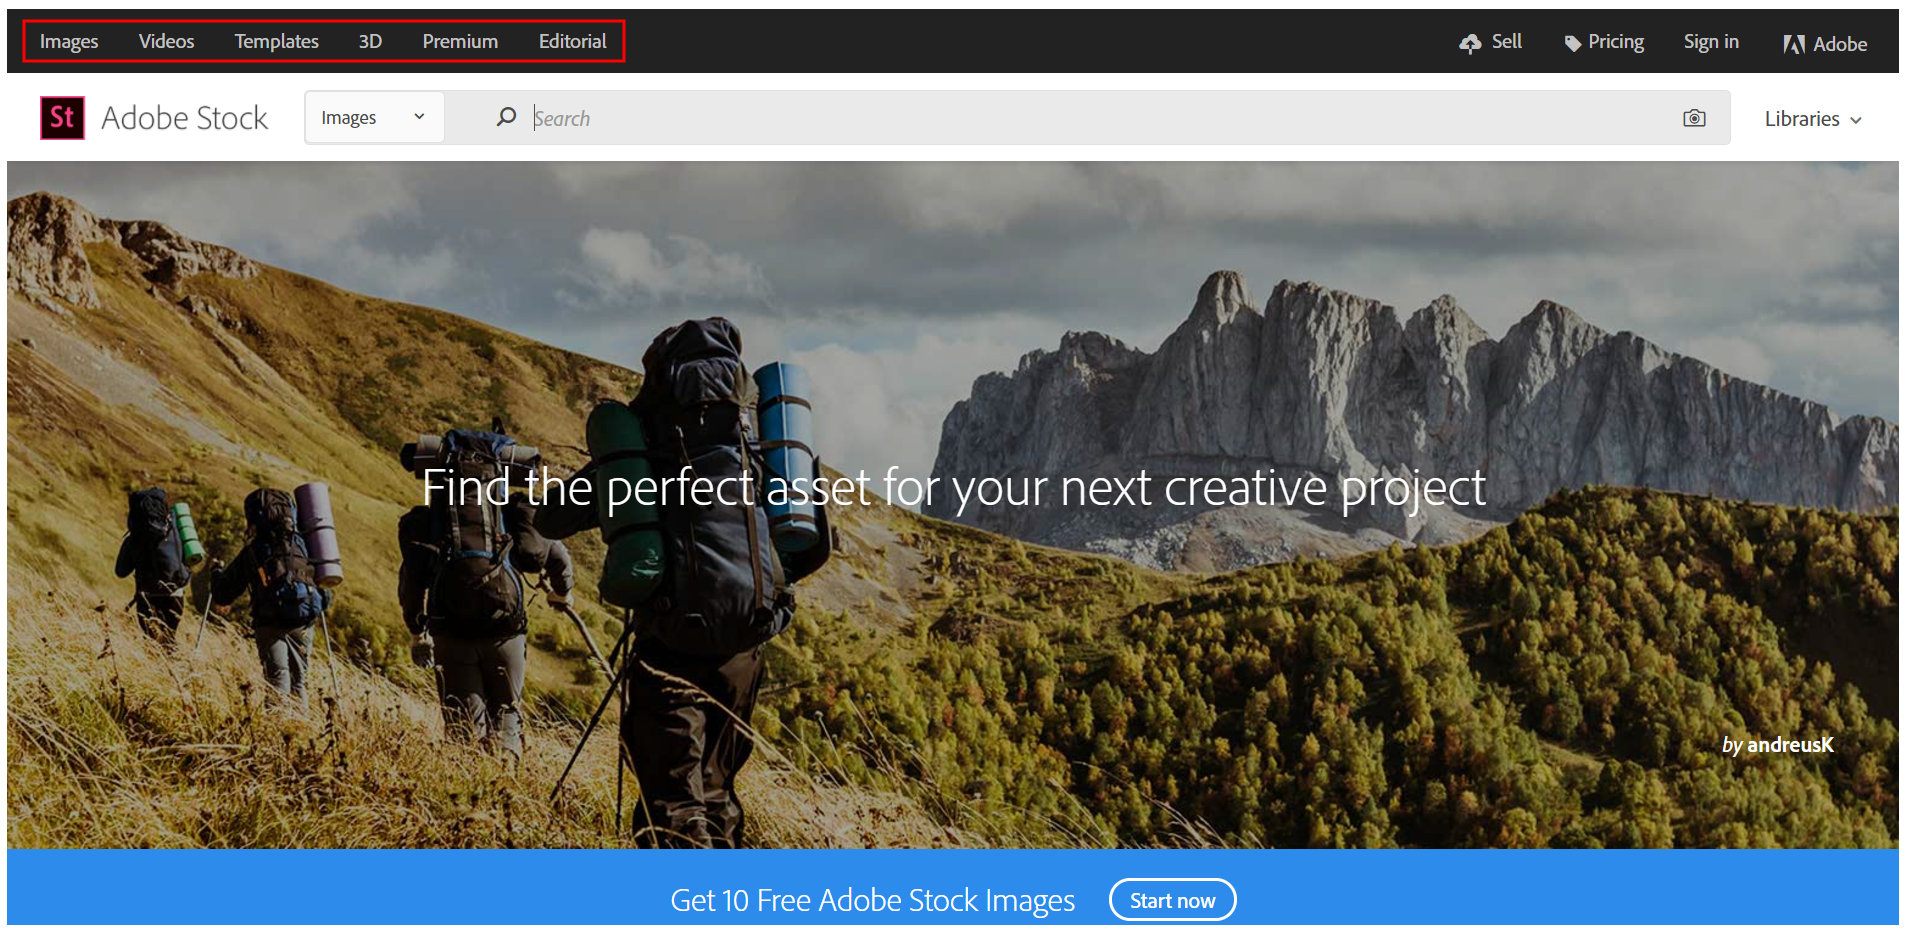 learn how to use the adobe stock website to explore and license